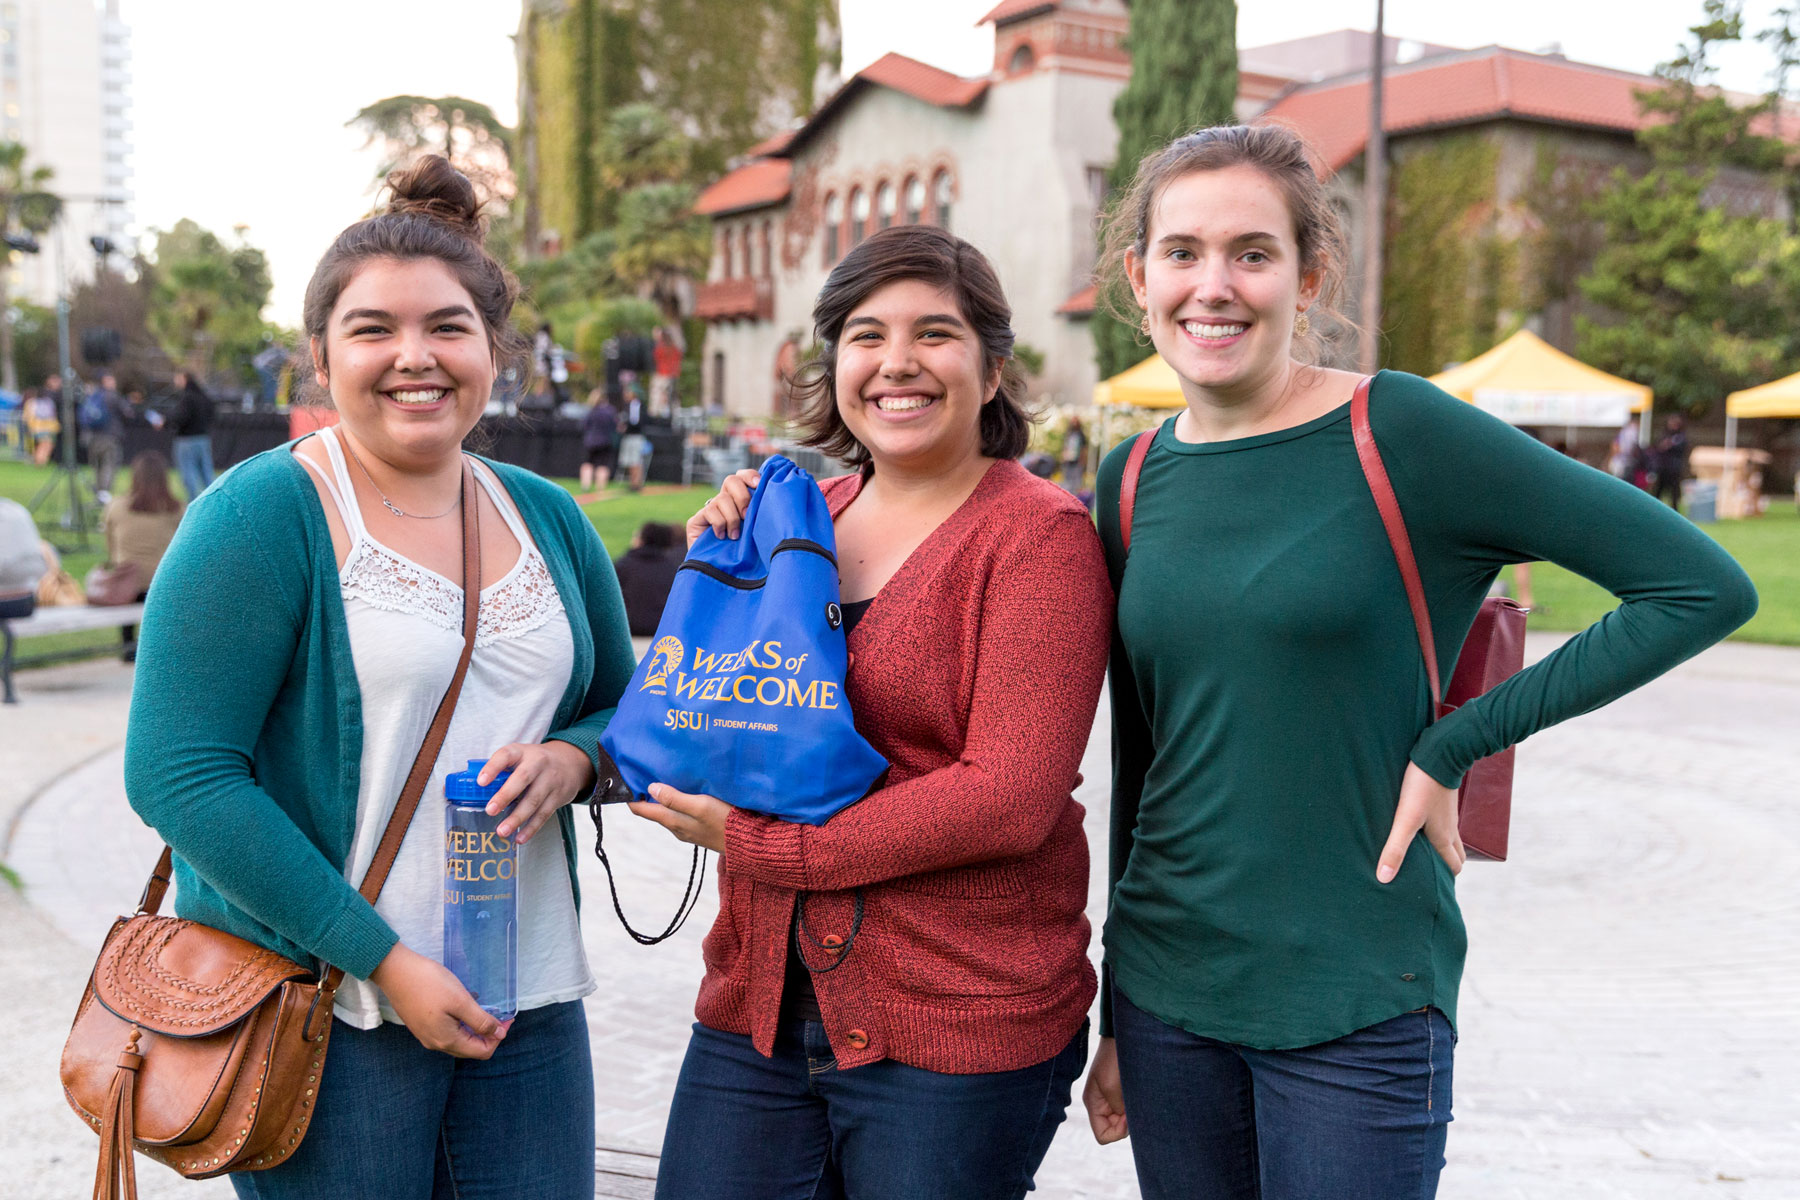 SJSU students at the Weeks of Welcome event.